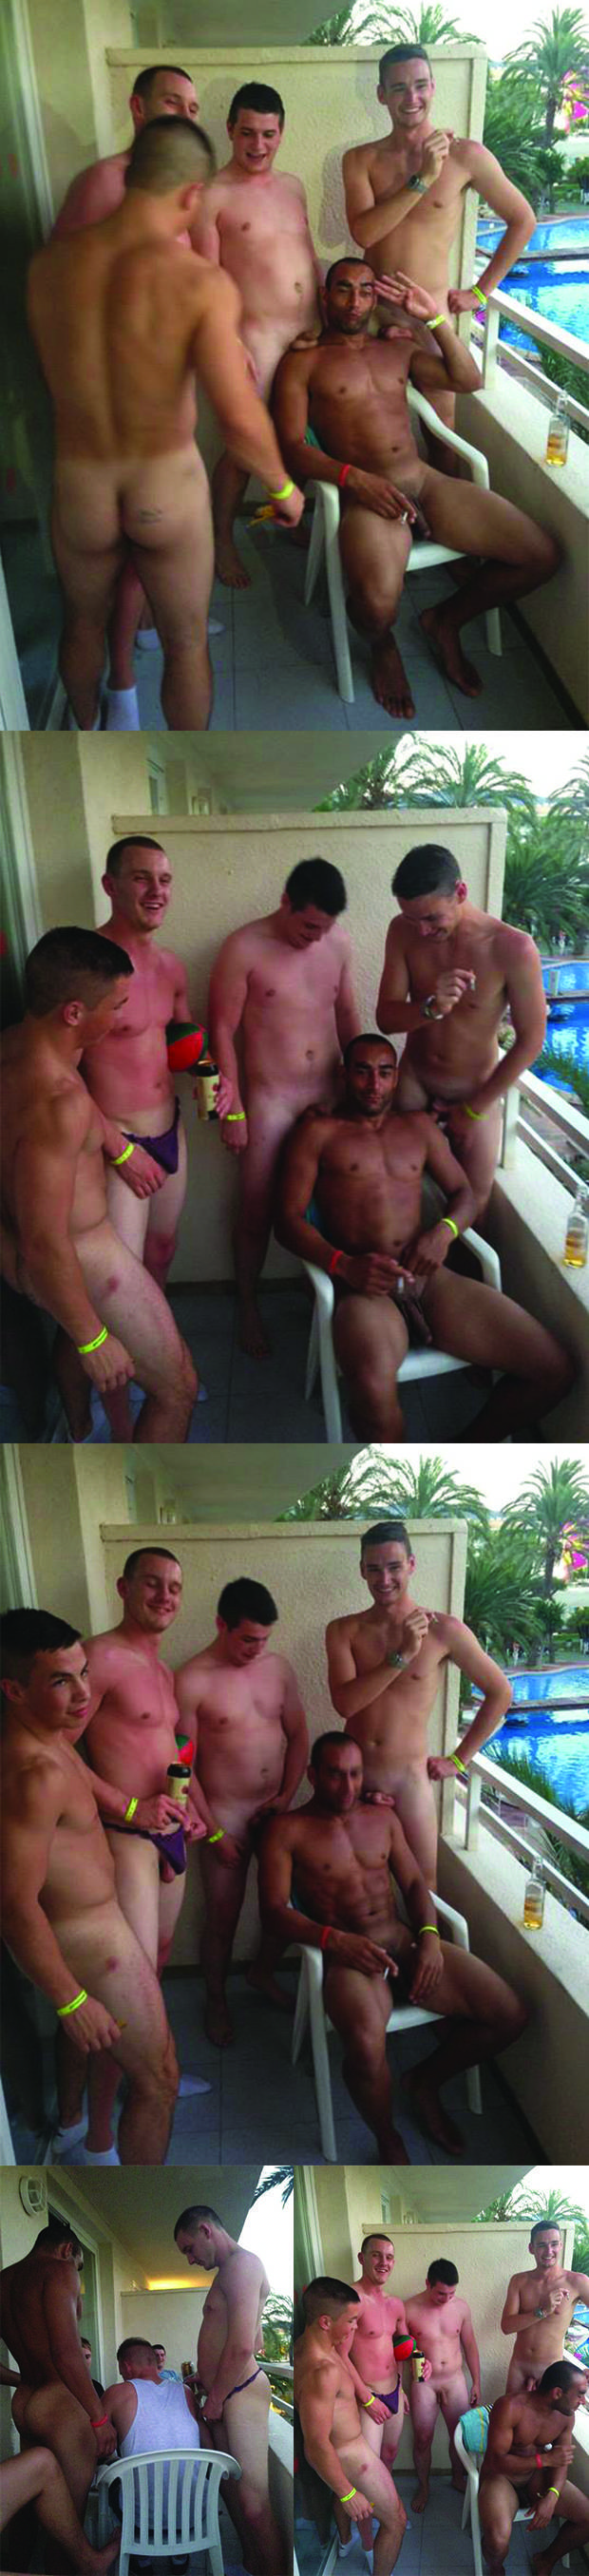 naked drunk straight guys playing with dicks